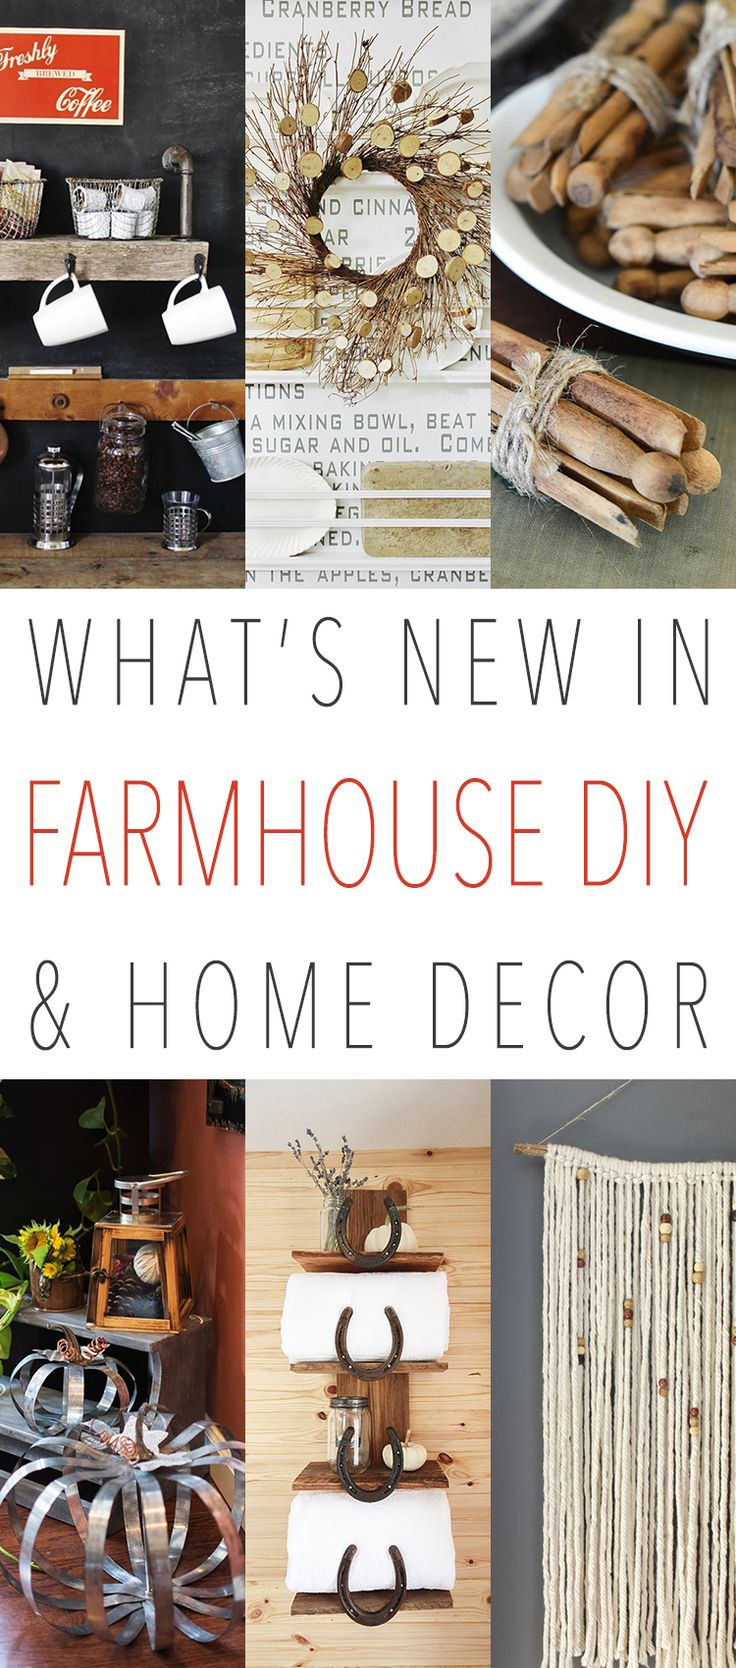 What s new in farmhouse diy and home decor joanna gaines for Top diy home decor blogs